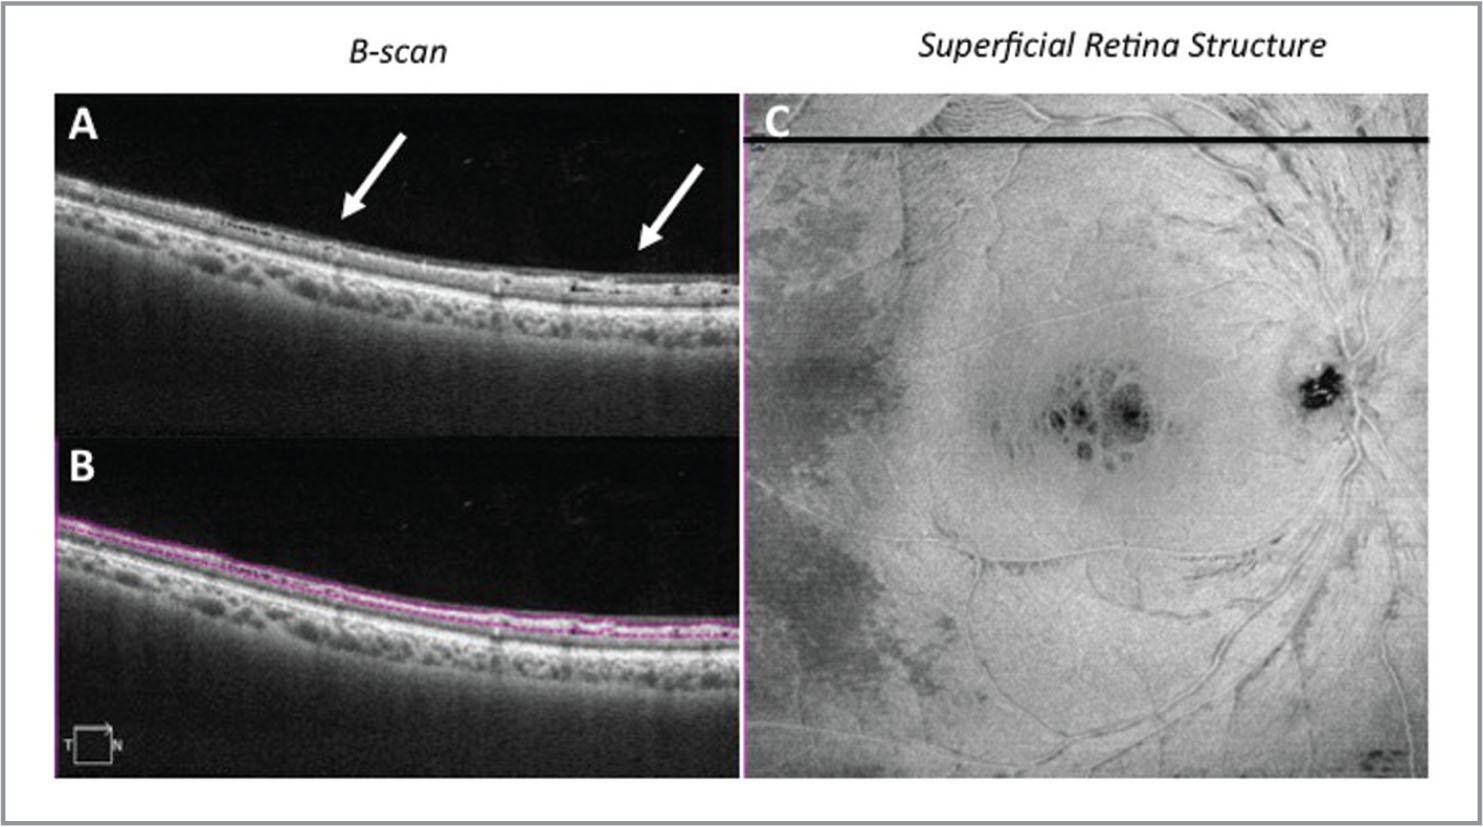 Swept-source optical coherence tomography along the superior arcade in the right eye. (A) Cross-sectional structural B-scan, along with (B) a B-scan with segmentation of the inner retina, demonstrate the inner retinal cysts (arrows). (C) Superficial retinal structure map demonstrates cystic changes within the central macula and along the arcades with abnormal thinning temporally. The black line represents the axis of the cross-sectional B-scan.